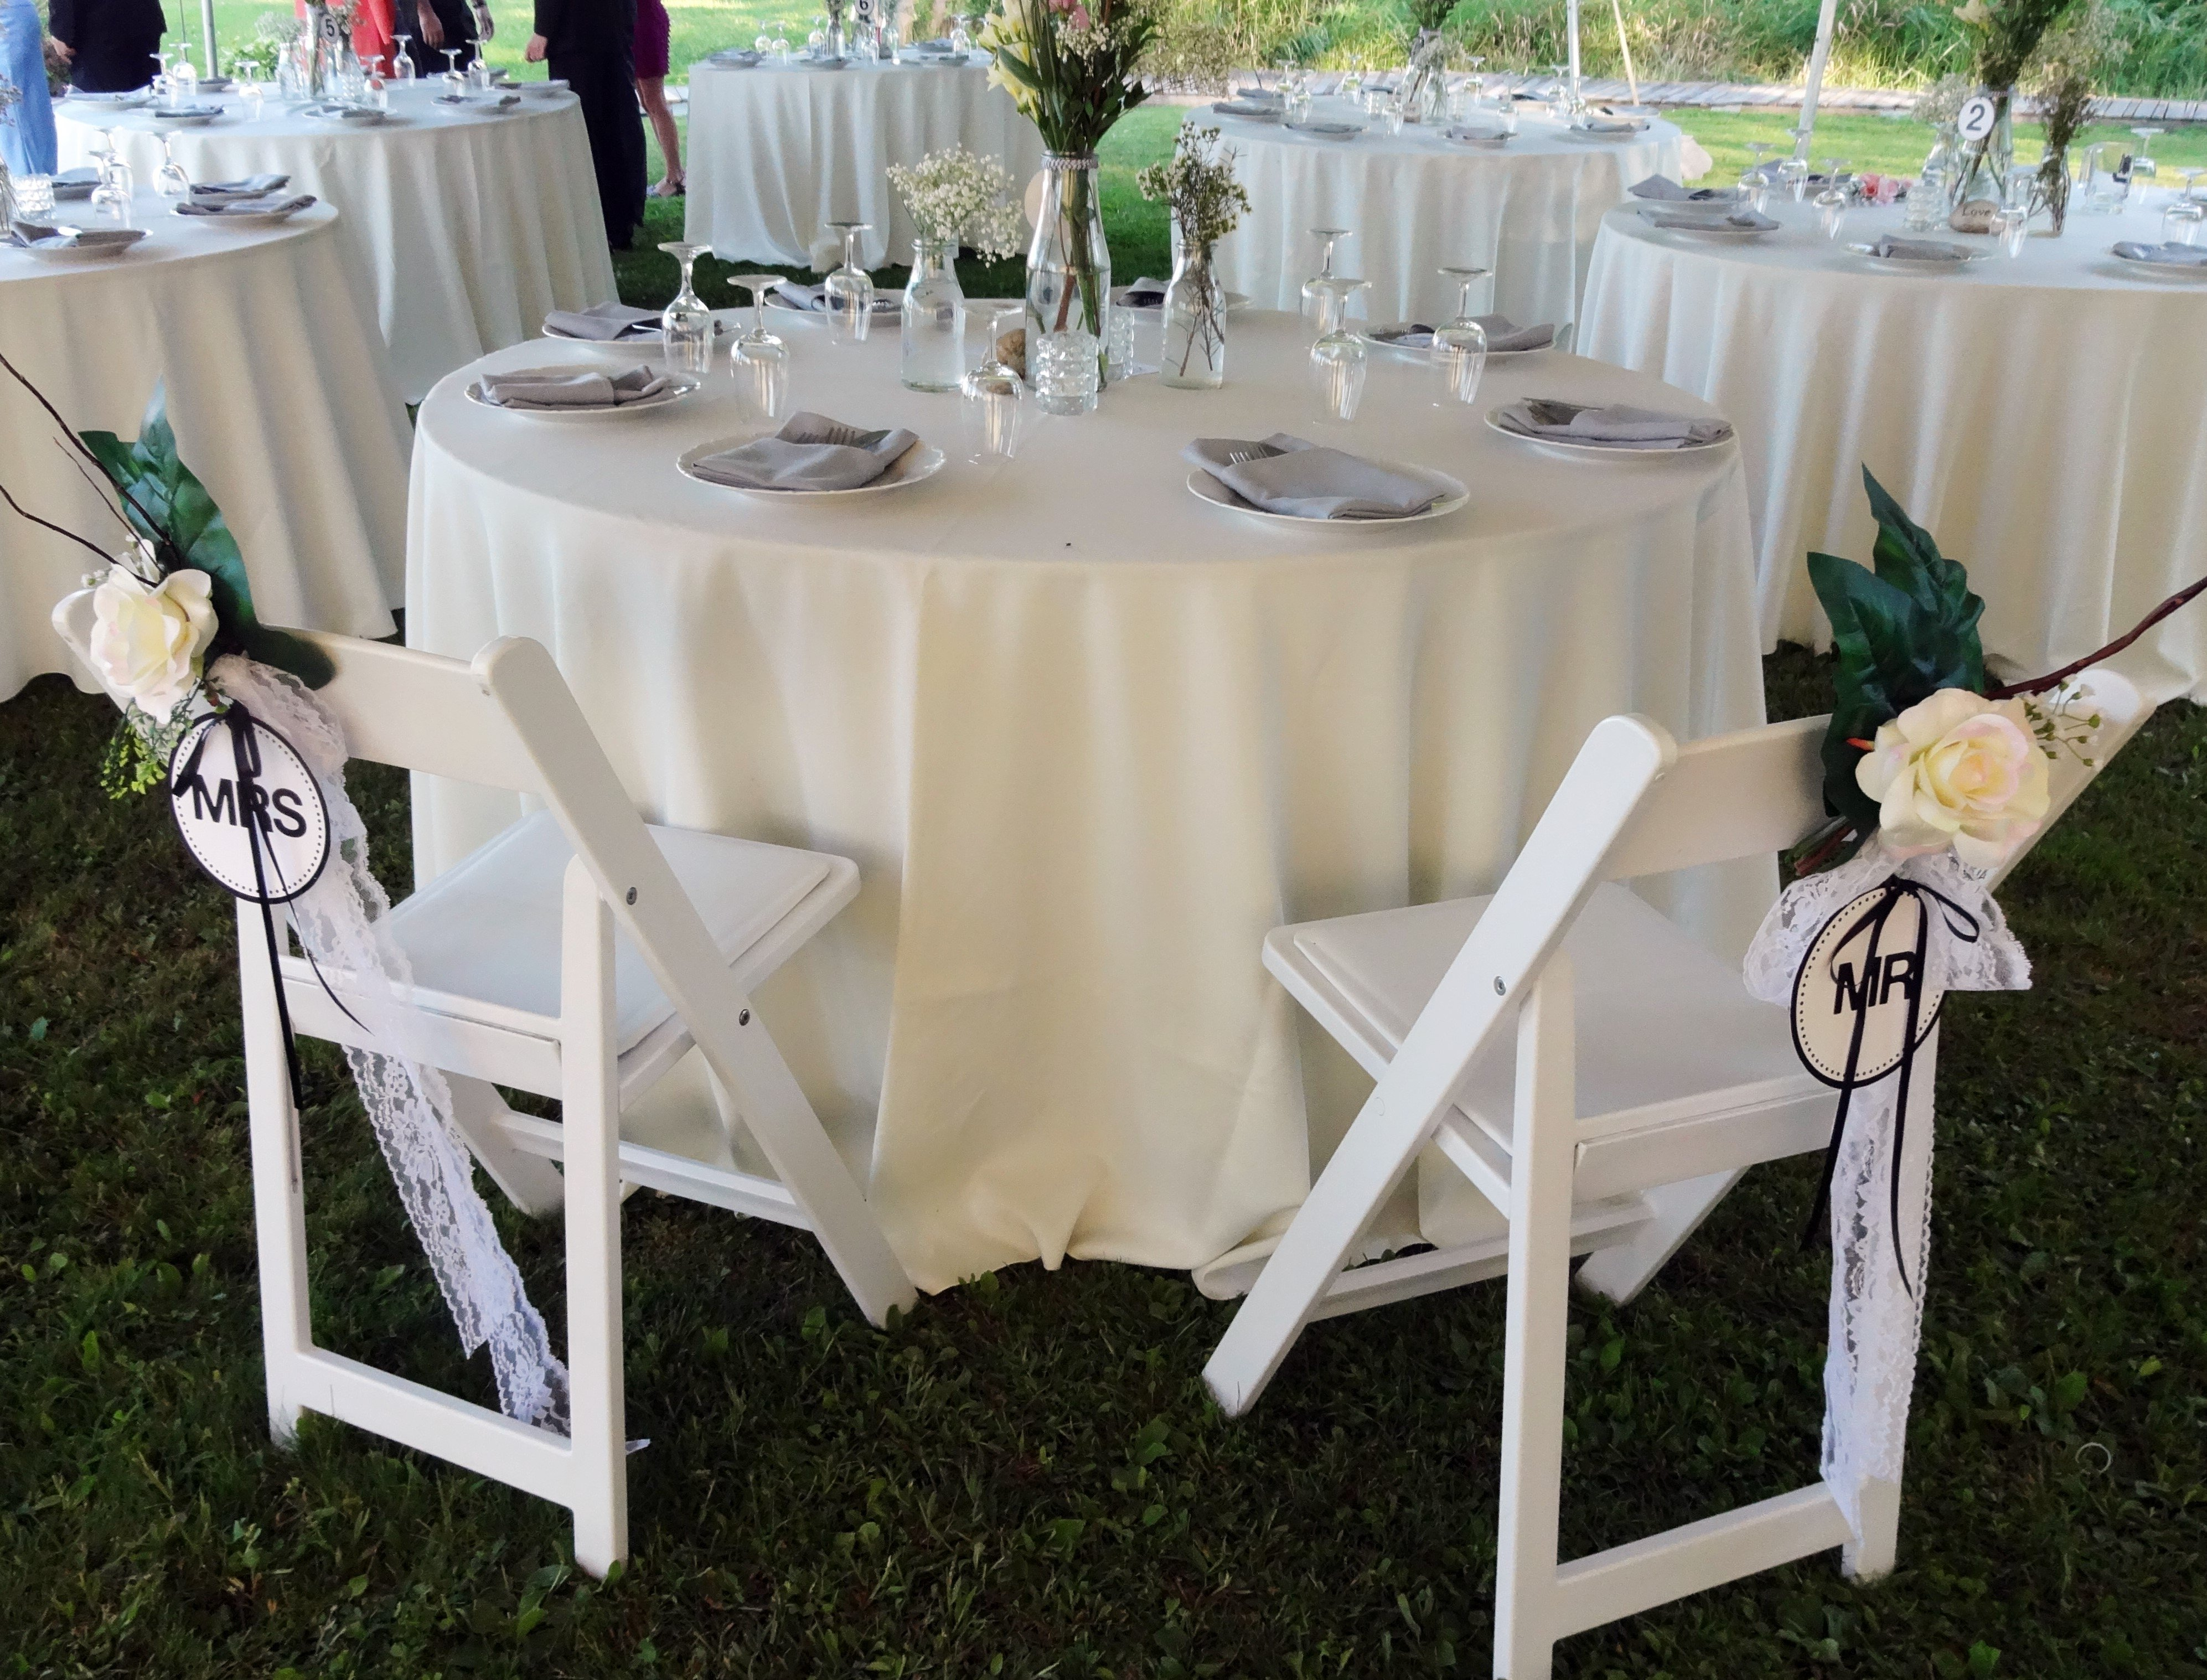 10 Lovable Bride And Groom Table Decoration Ideas 3 head table ideas for your wedding reception ottawa wedding journal 2020